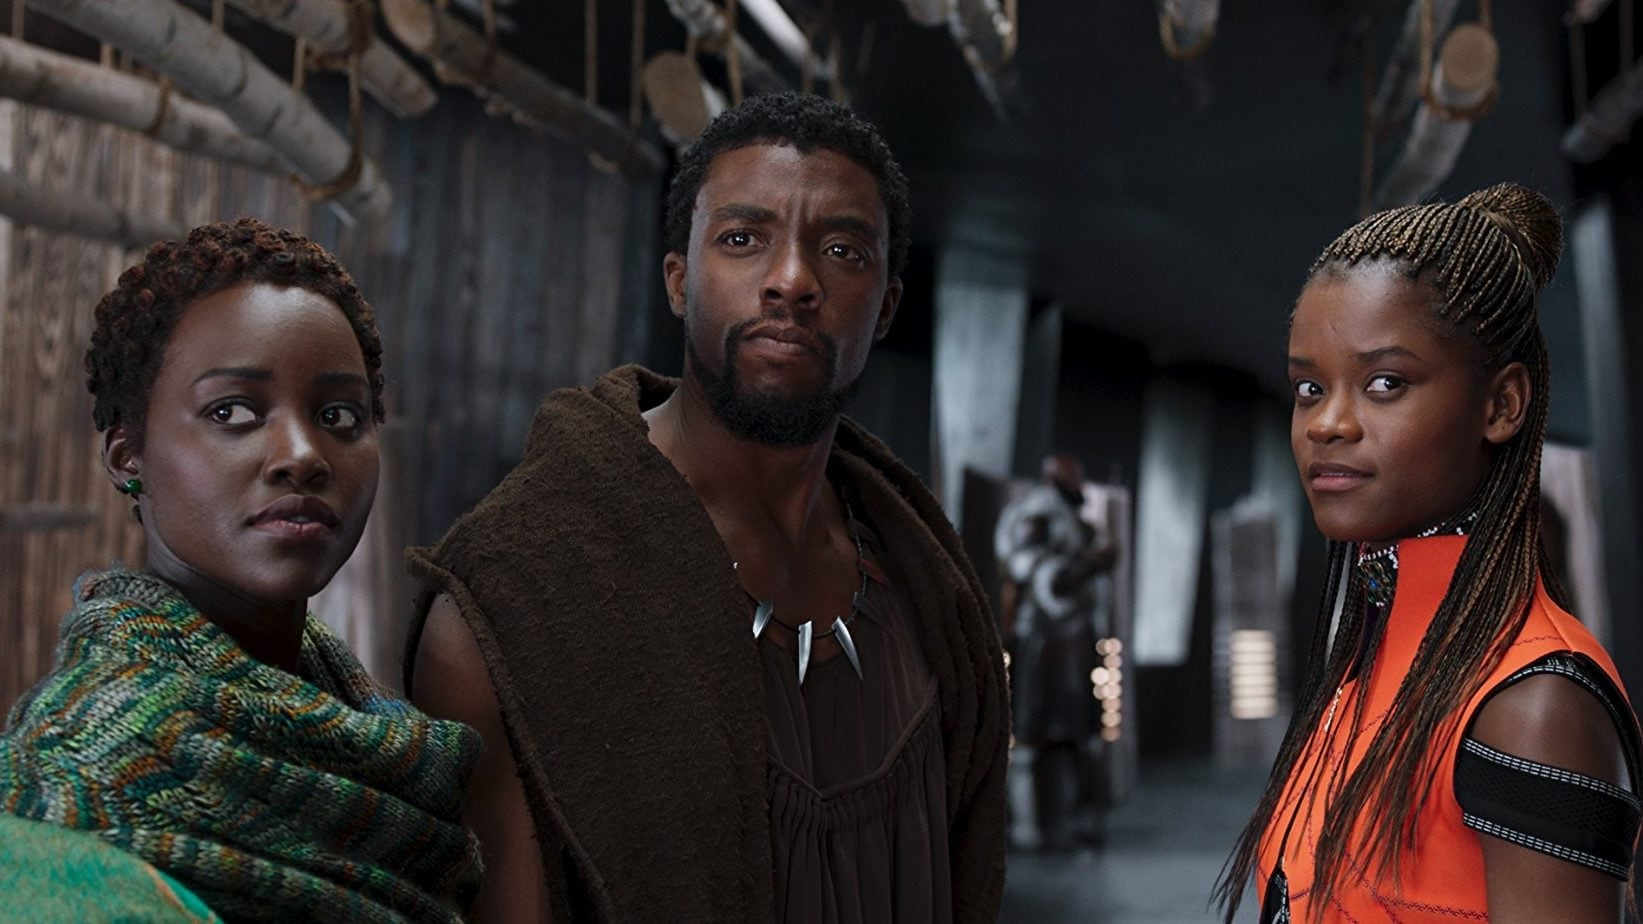 'Black Panther' Tops $1.3 Billion At Worldwide Box Office